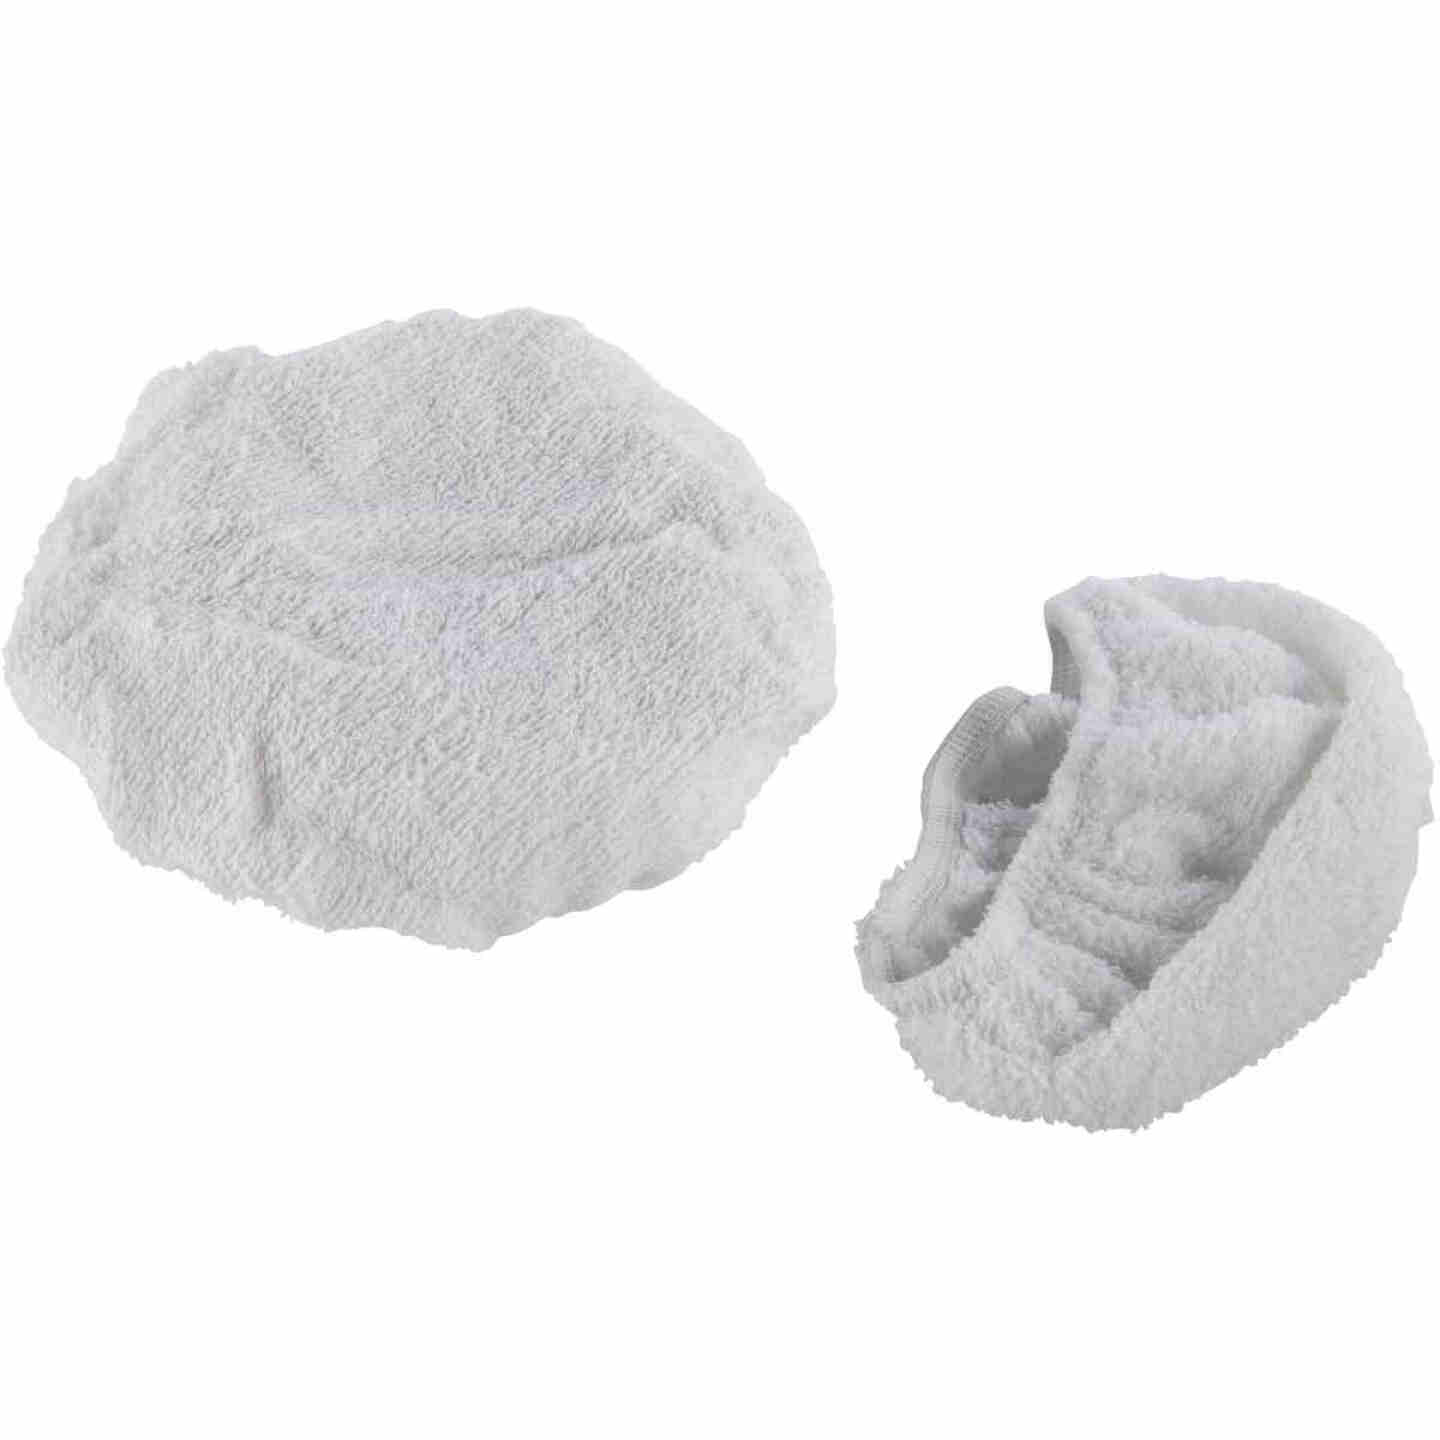 "Auto Spa 7"" To 8"" Washable Cotton Polishing Bonnet, (2-Pack) Image 1"